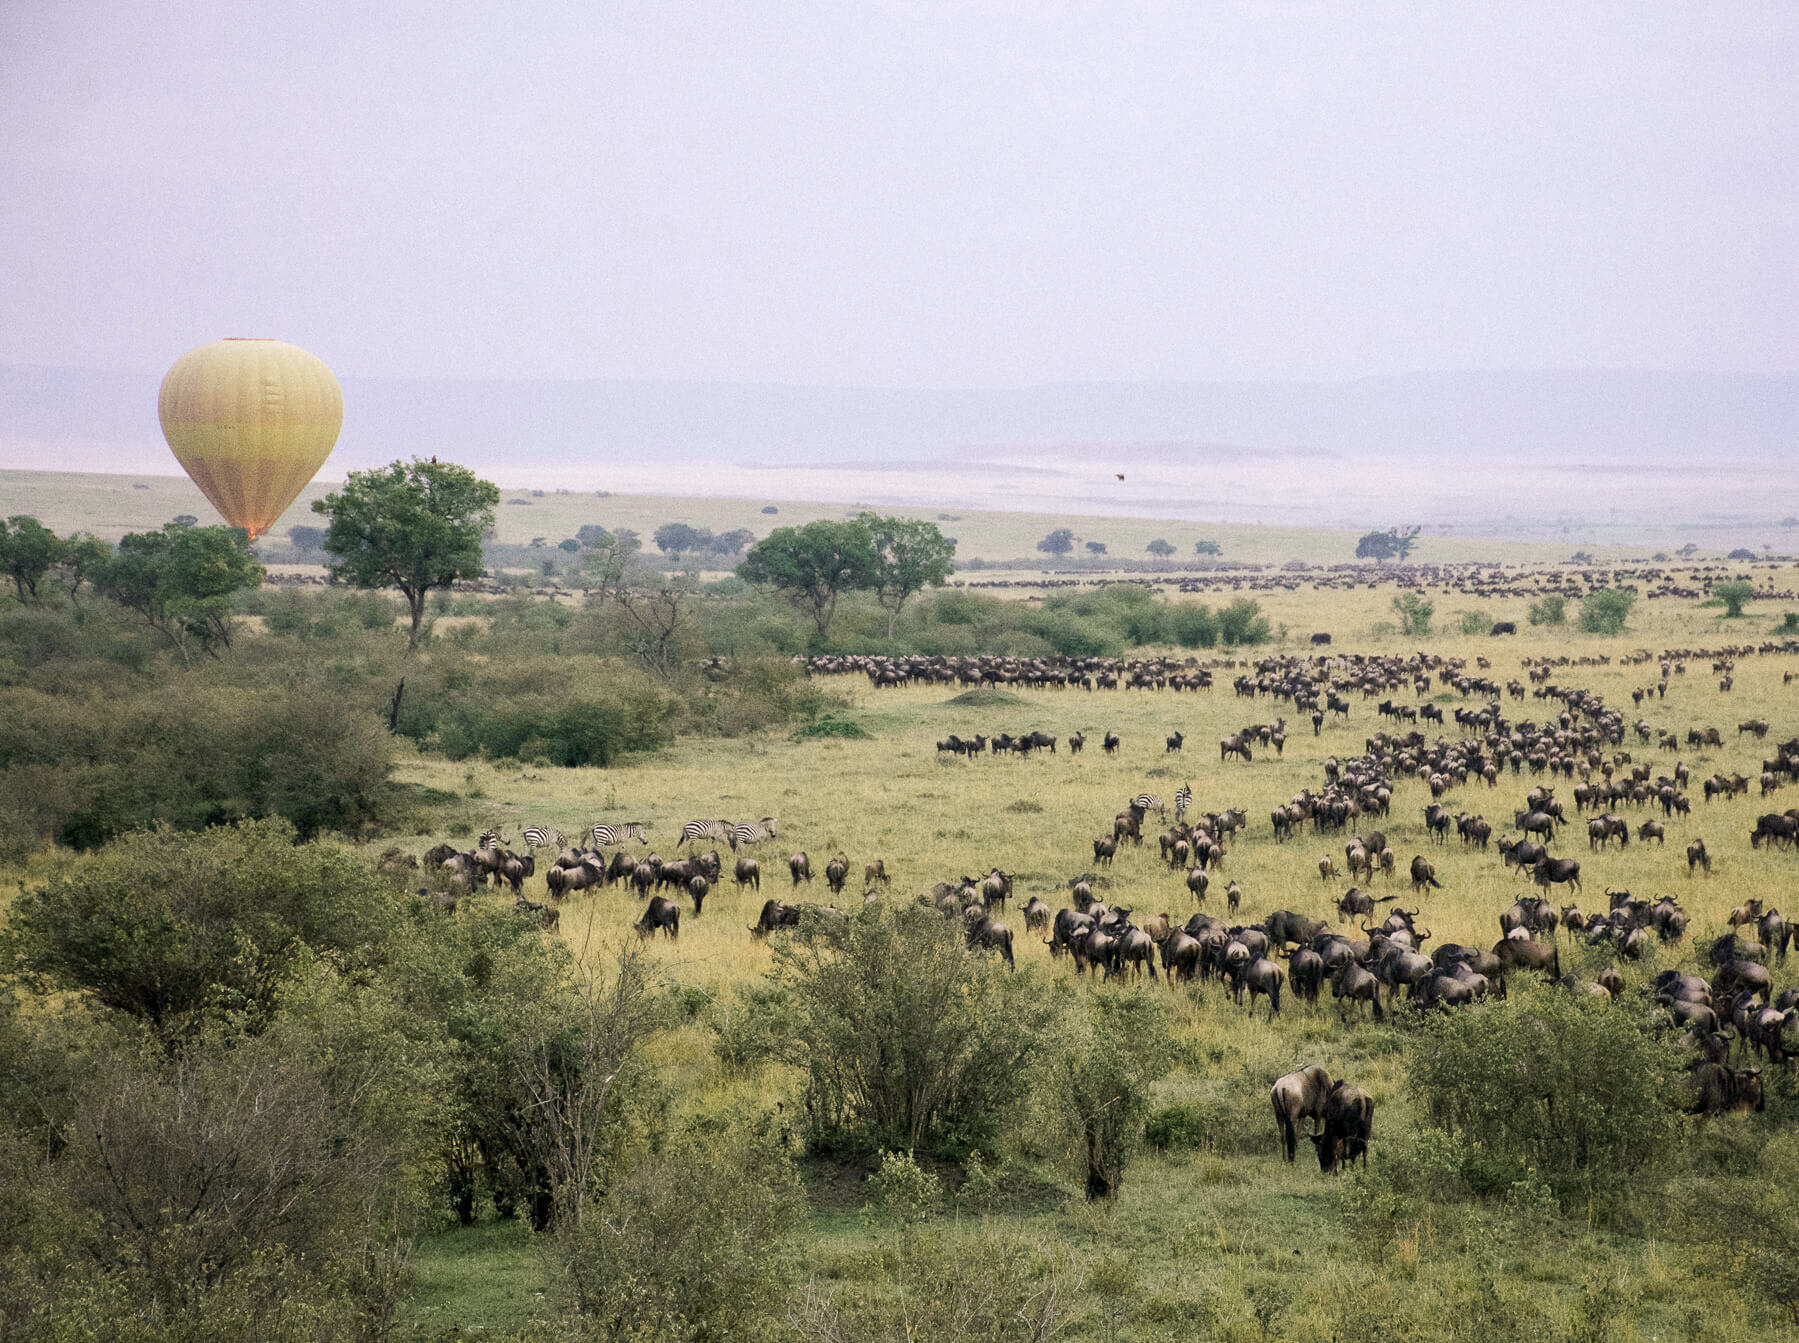 View of the great wildebeest migration from a hot airballoon, with another yellow hot air balloon disappearing into the tree line low above the wildebeest (Balloon safari maasai mara)